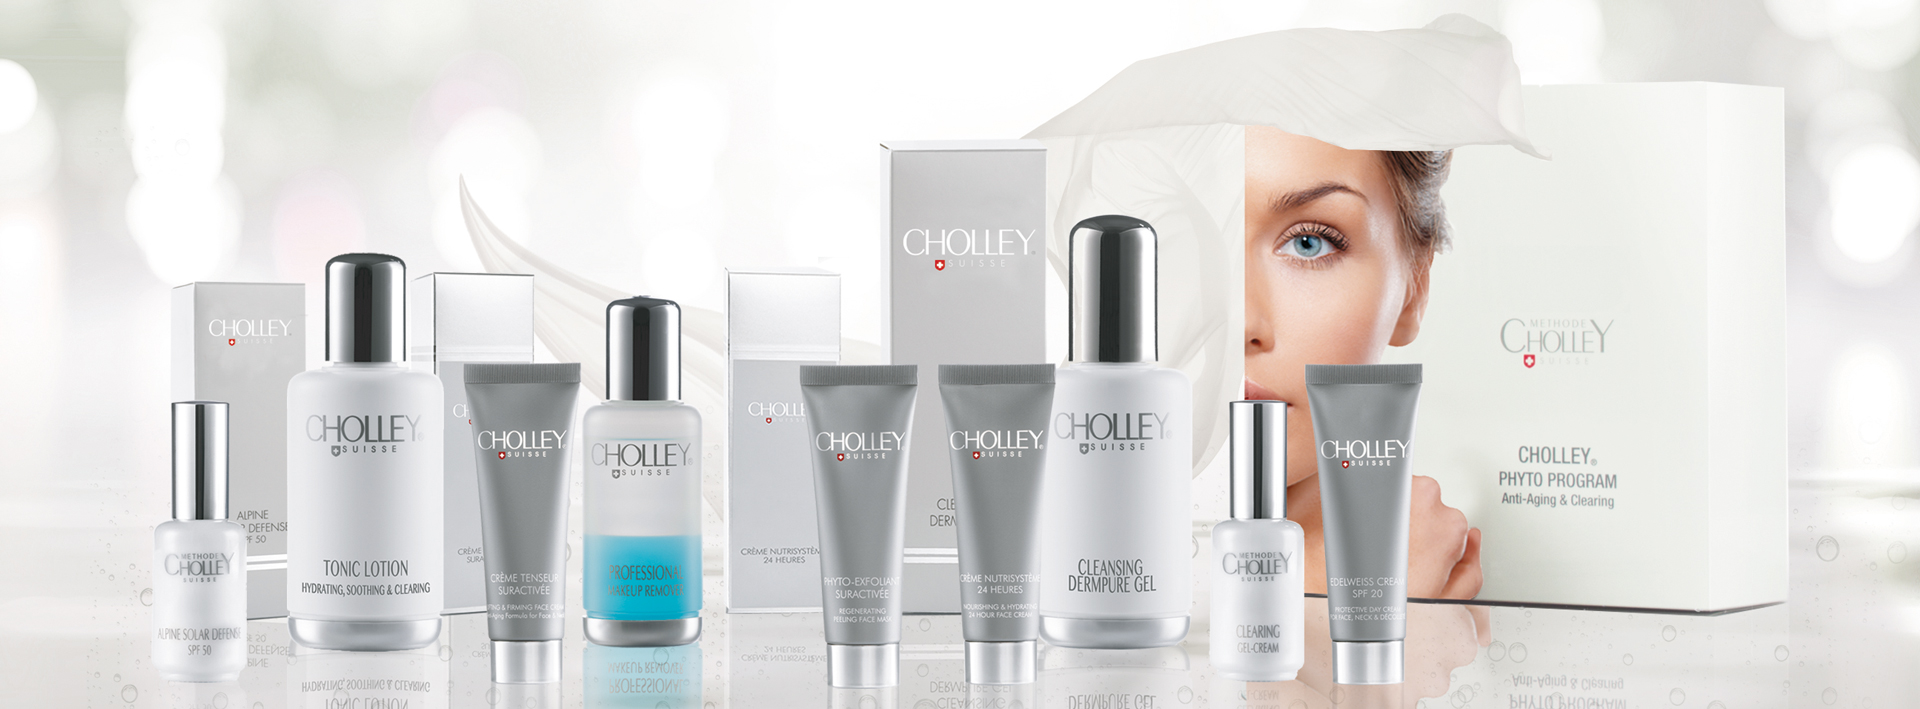 CHOLLEY Anti-Aging and Whitening